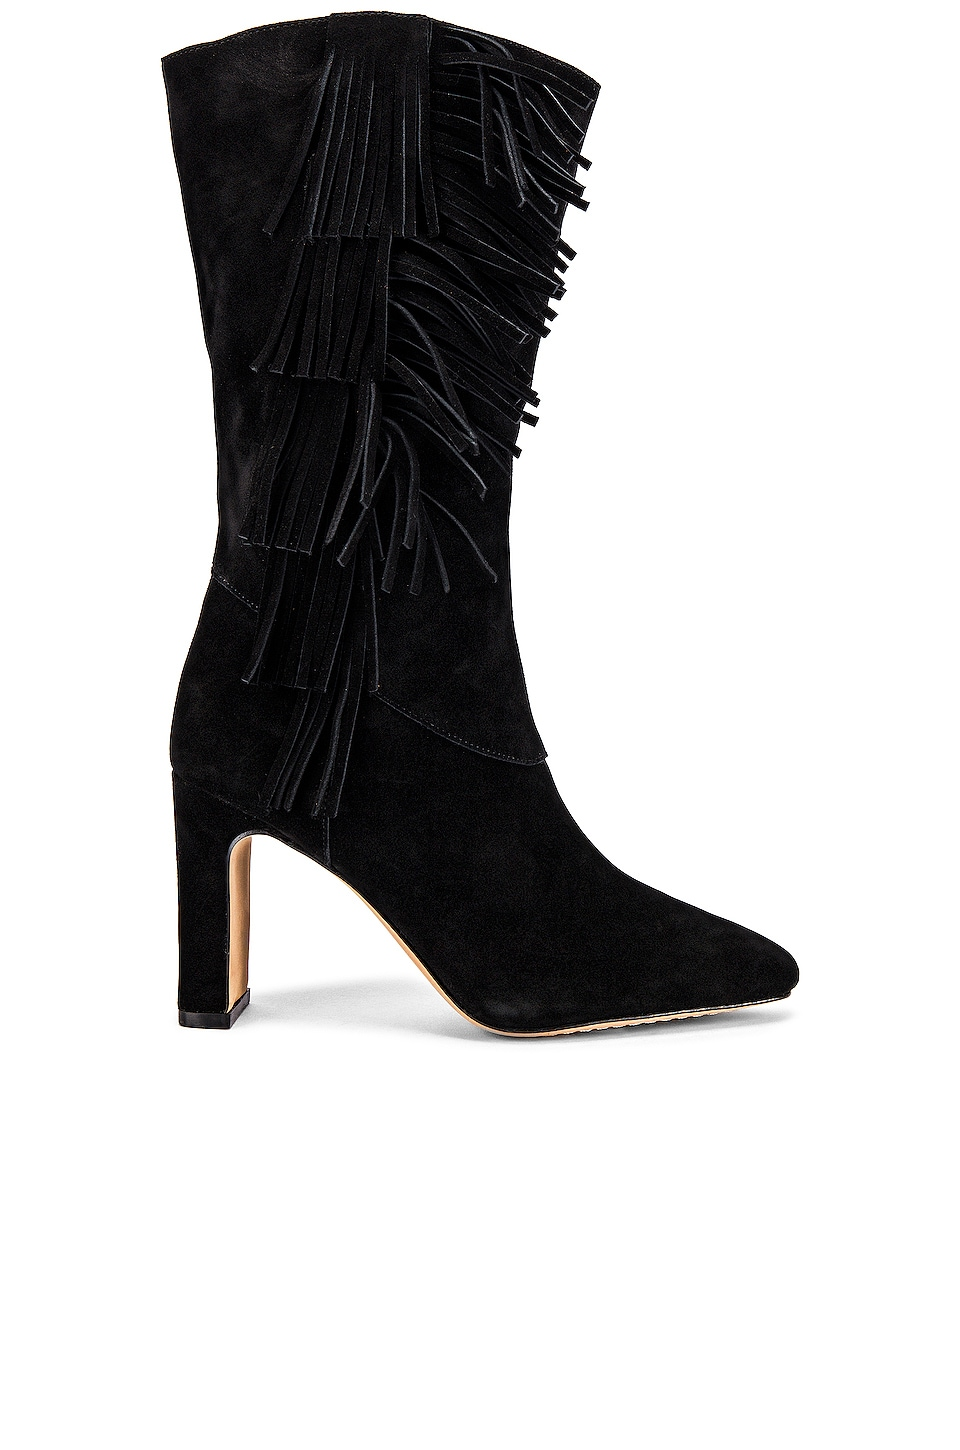 Vince Camuto Sterla Boot in Black Suede